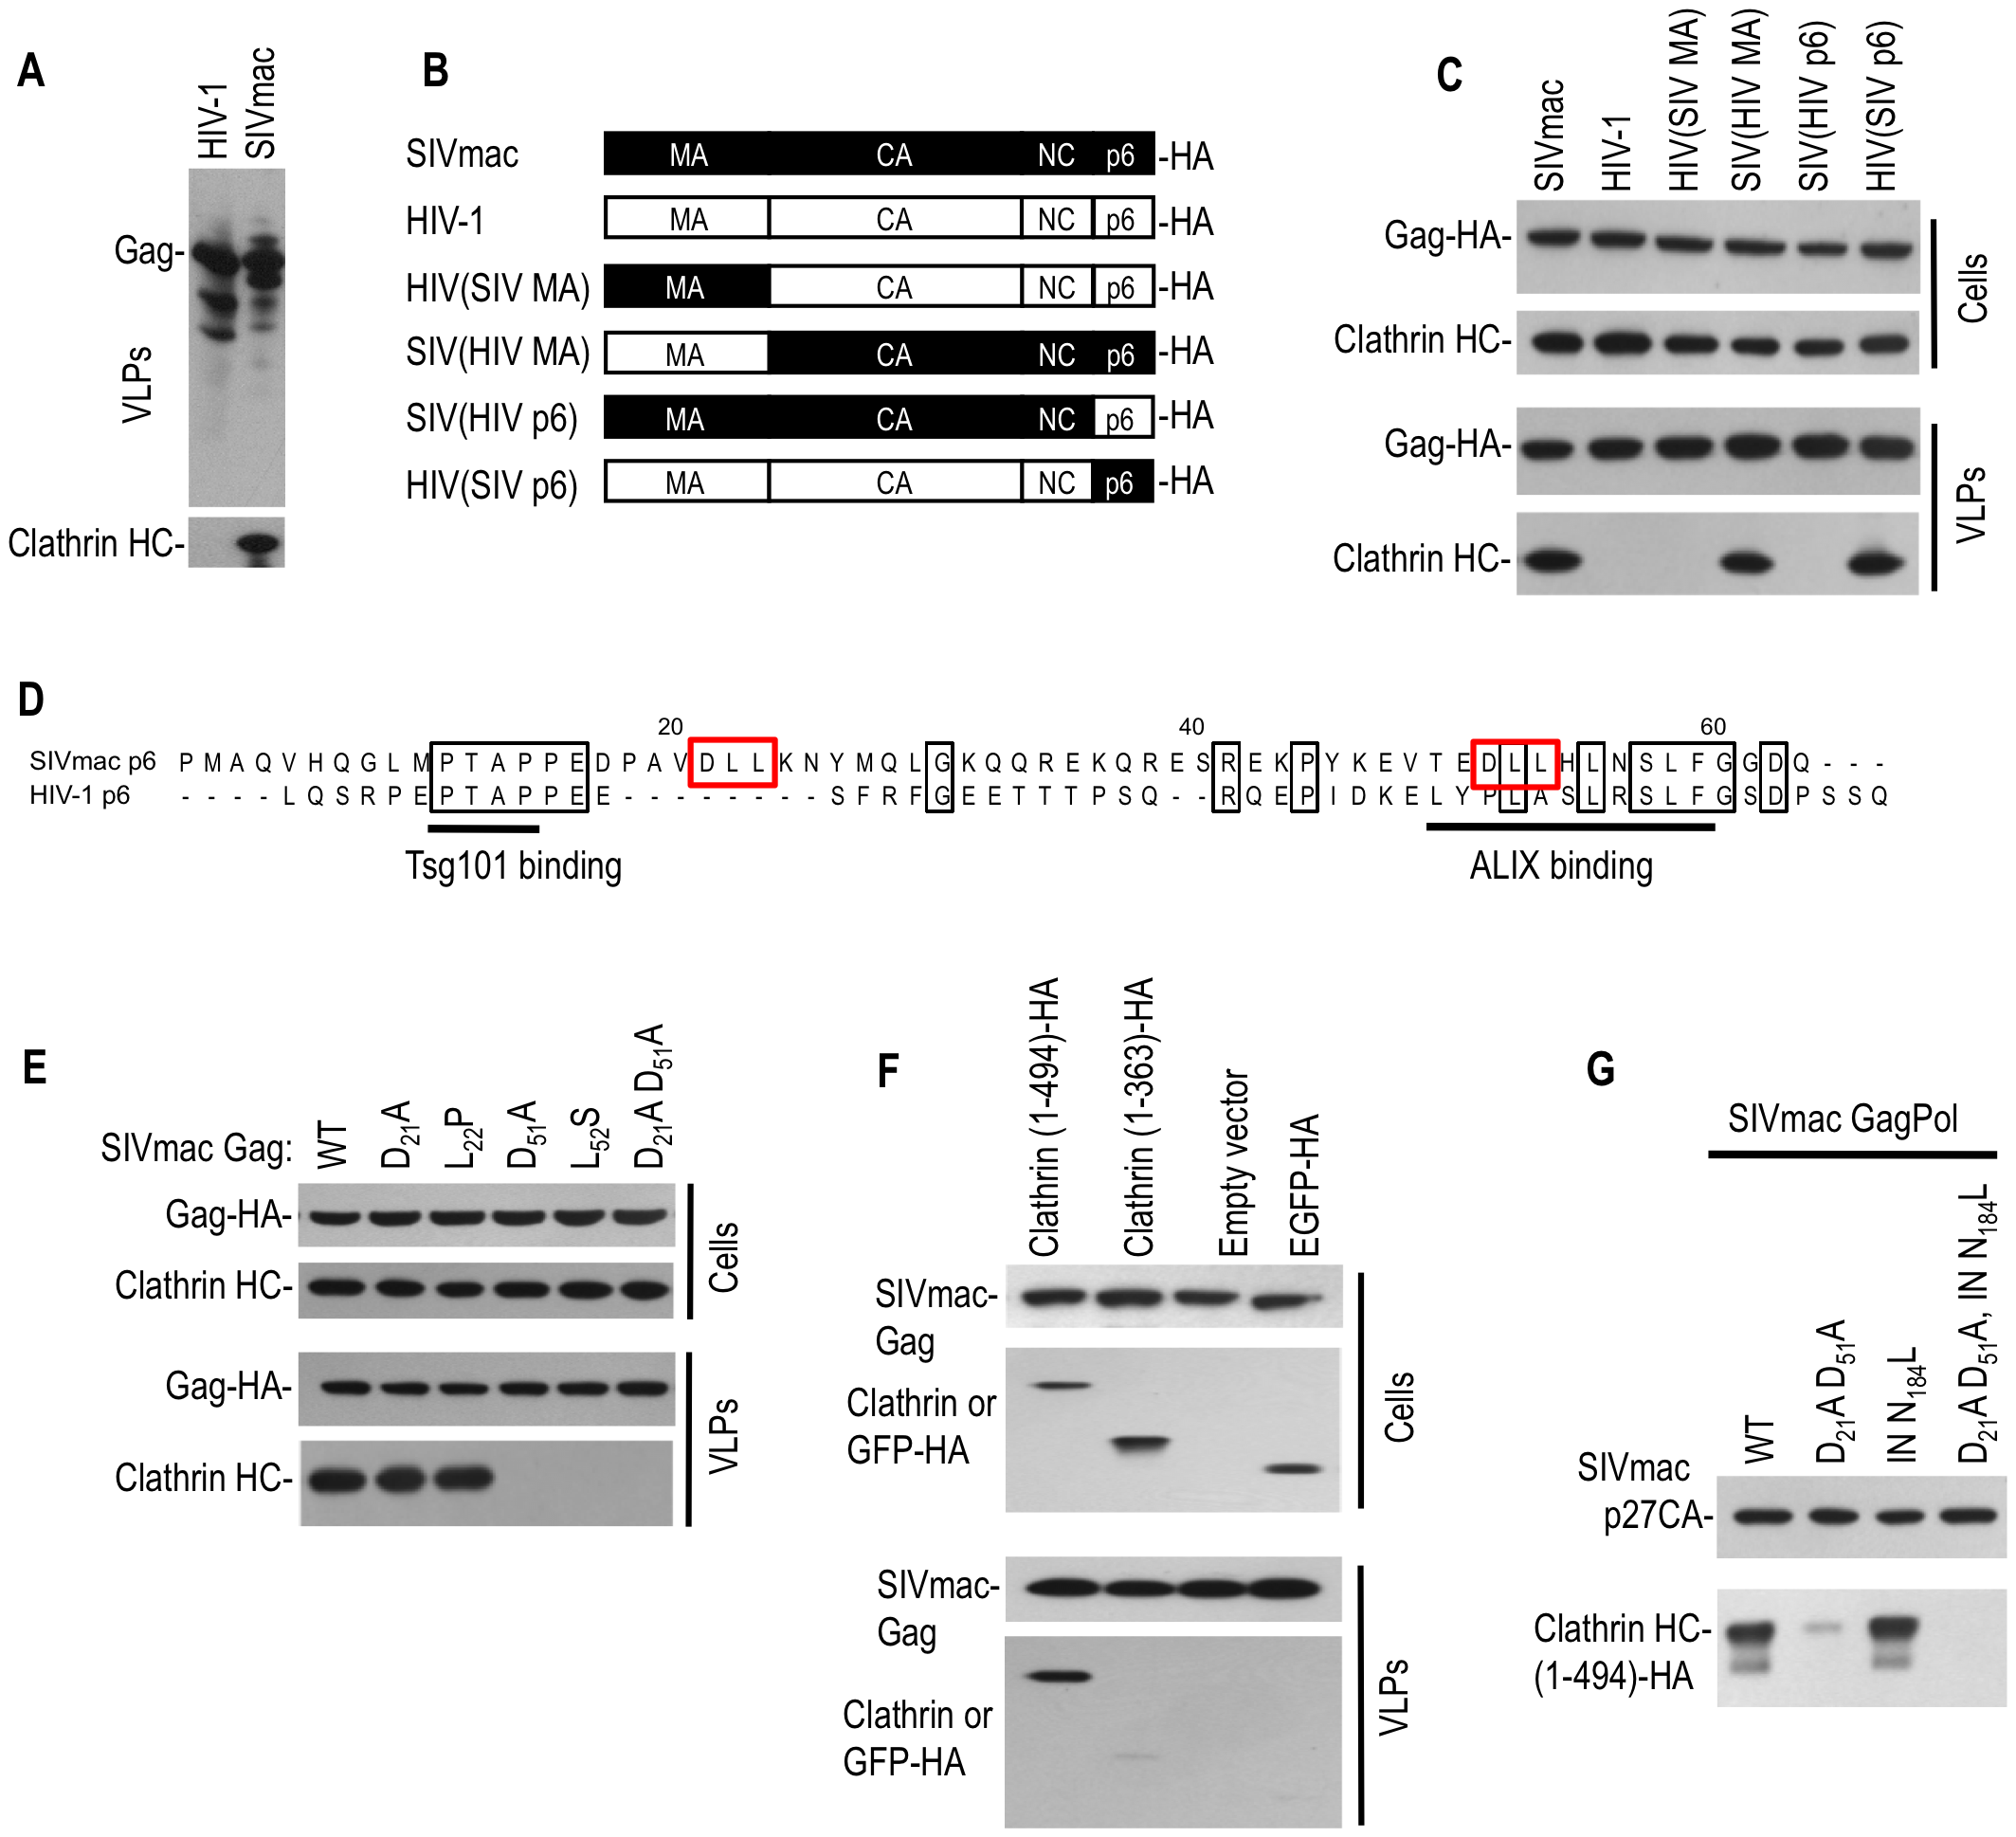 Clathrin is recruited into SIVmac particles by Gag (p6) with a minor contribution from Pol.